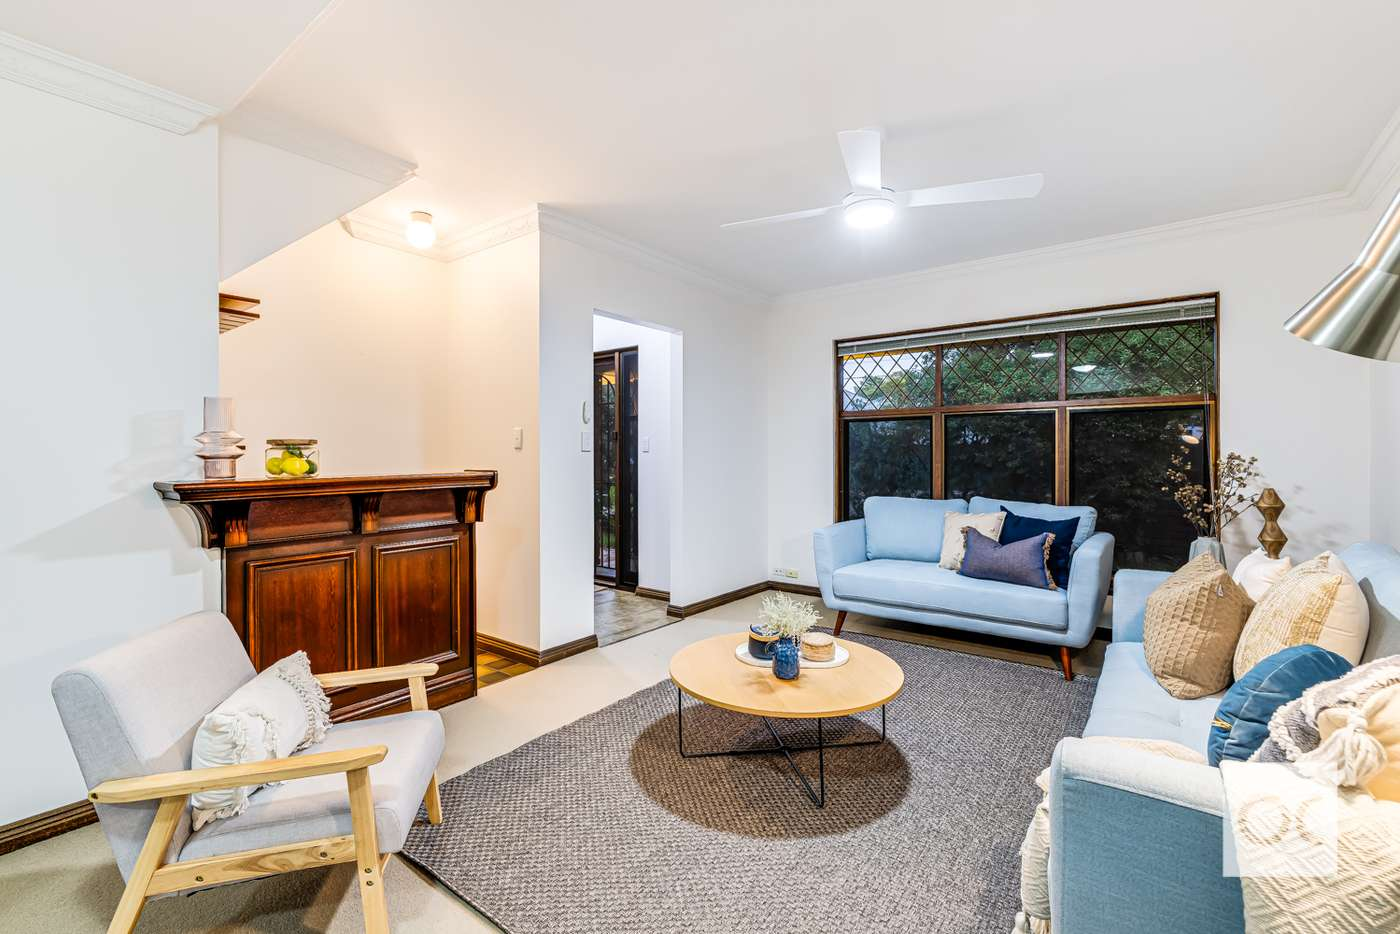 Fifth view of Homely house listing, 2/9 Mathias Avenue, Cumberland Park SA 5041